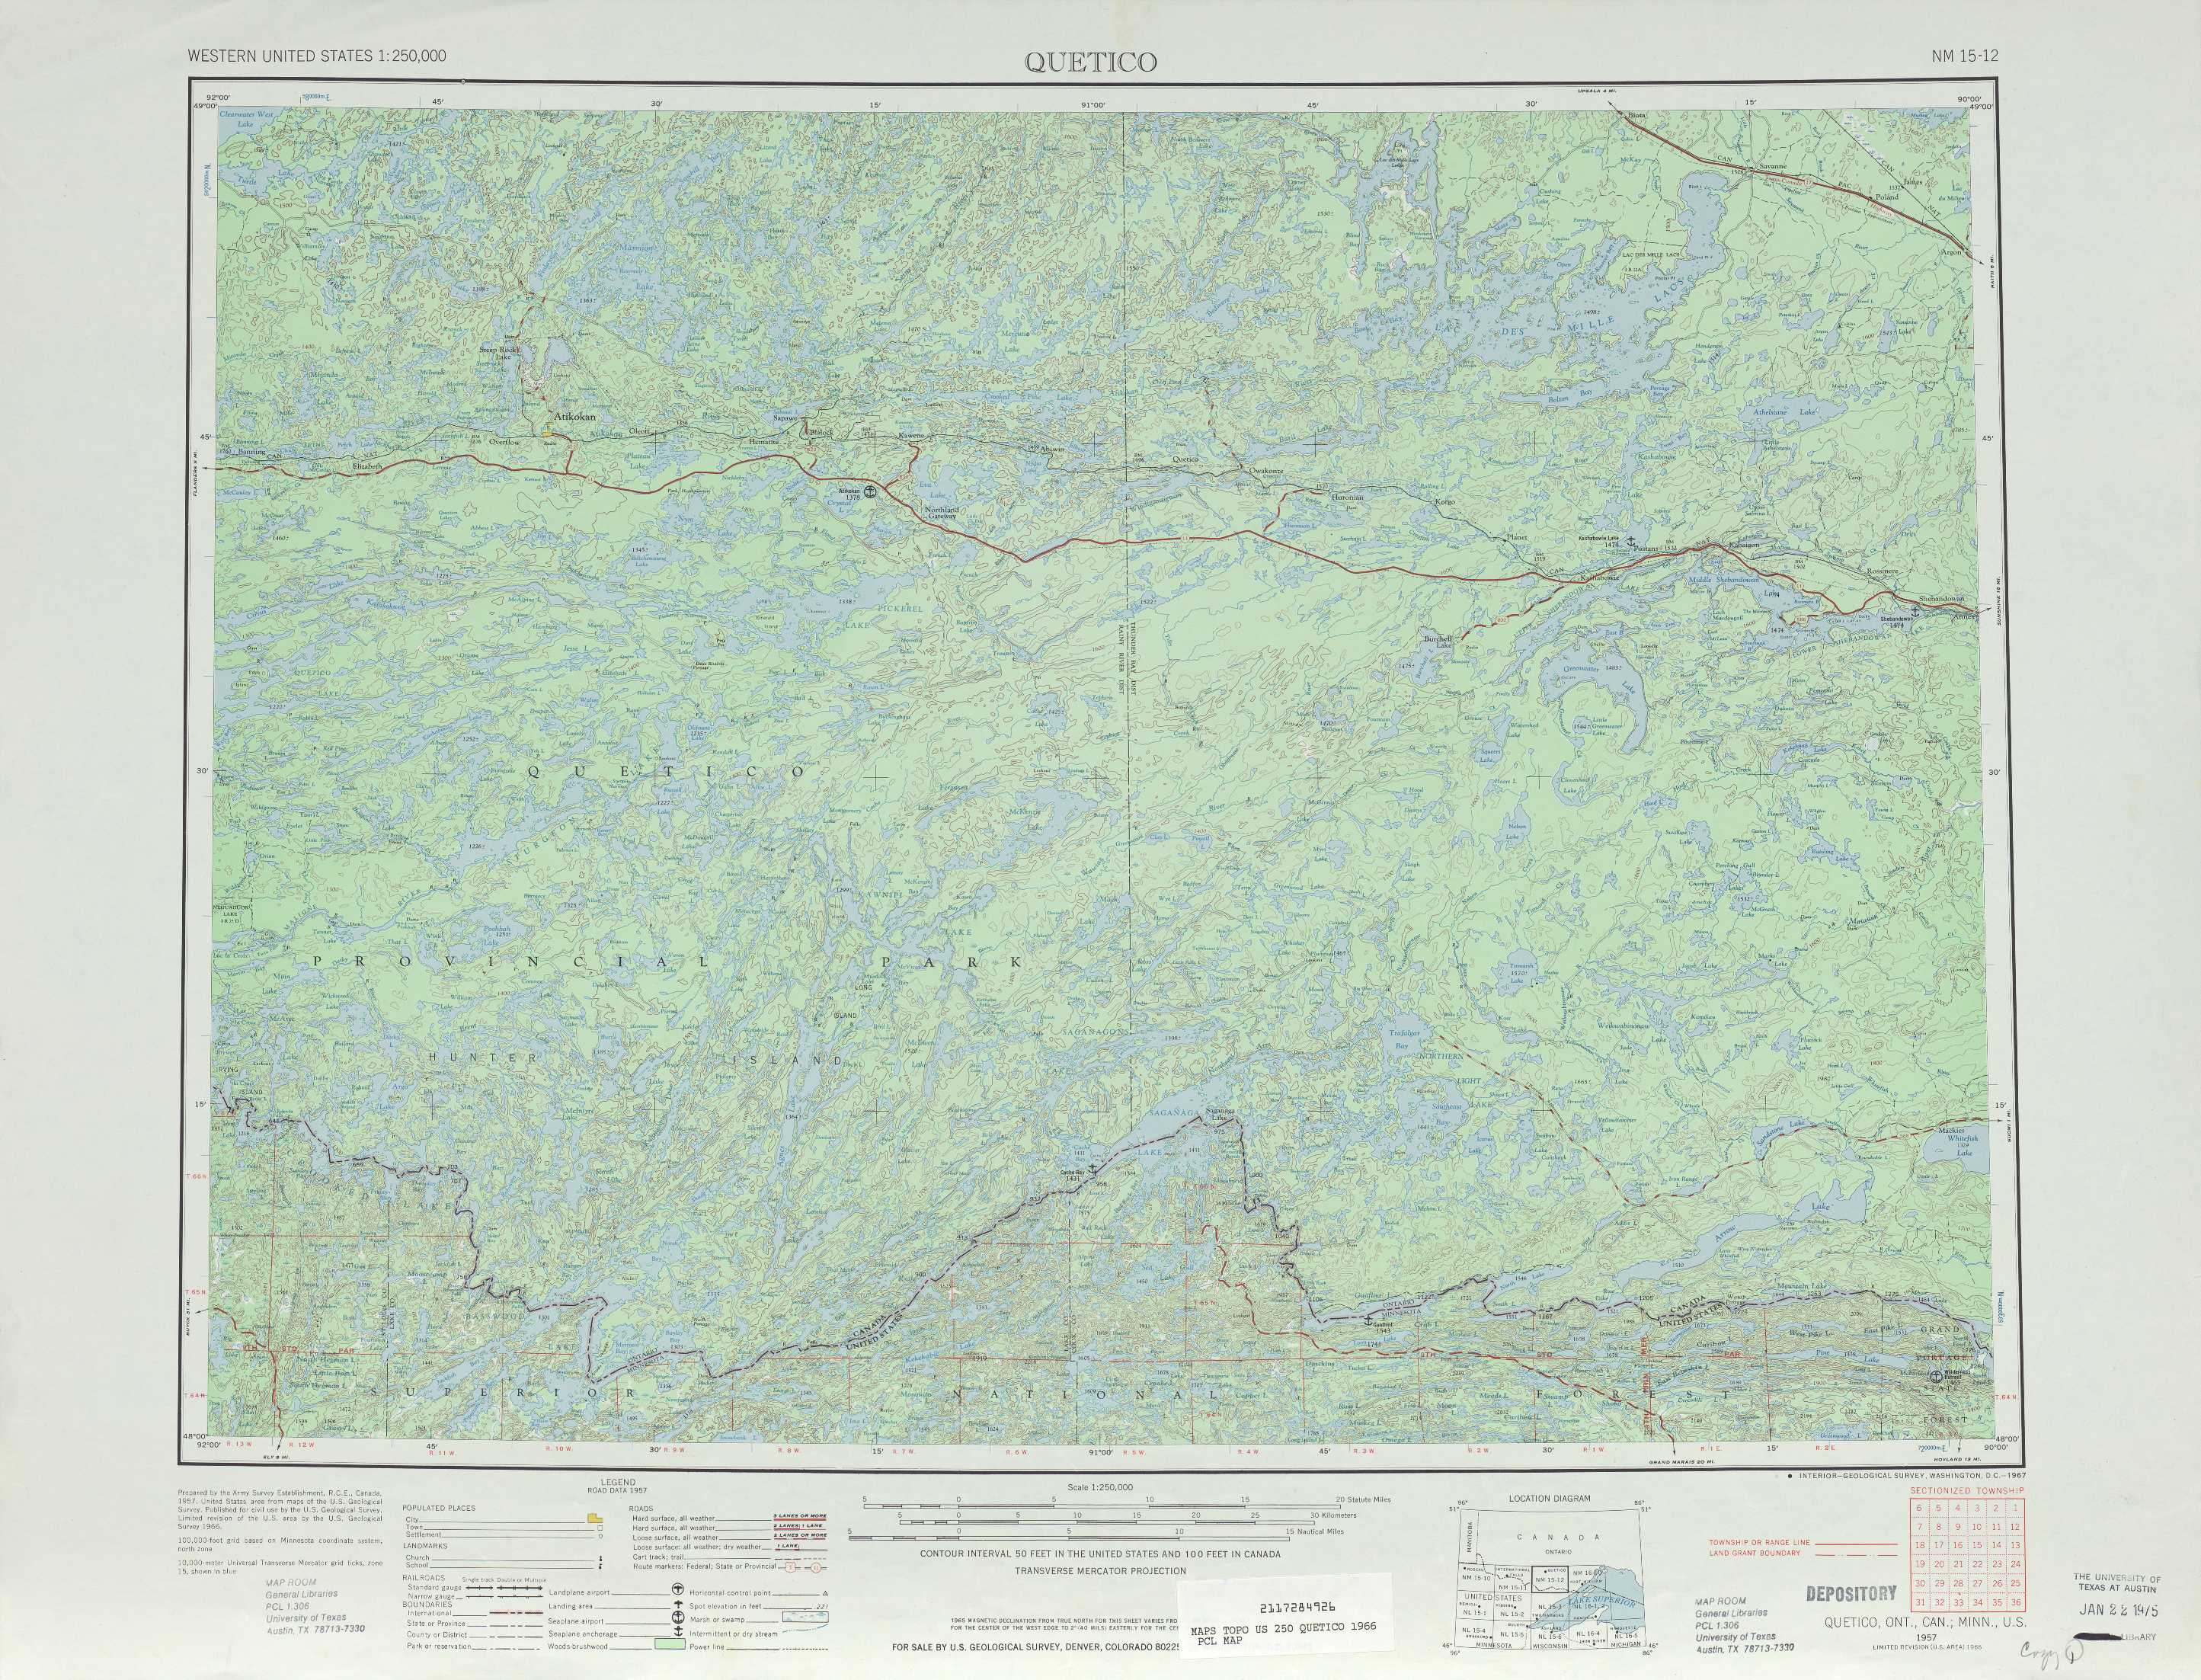 Quetico topographic maps, MN - USGS Topo Quad 48090a1 at 1:250,000 on